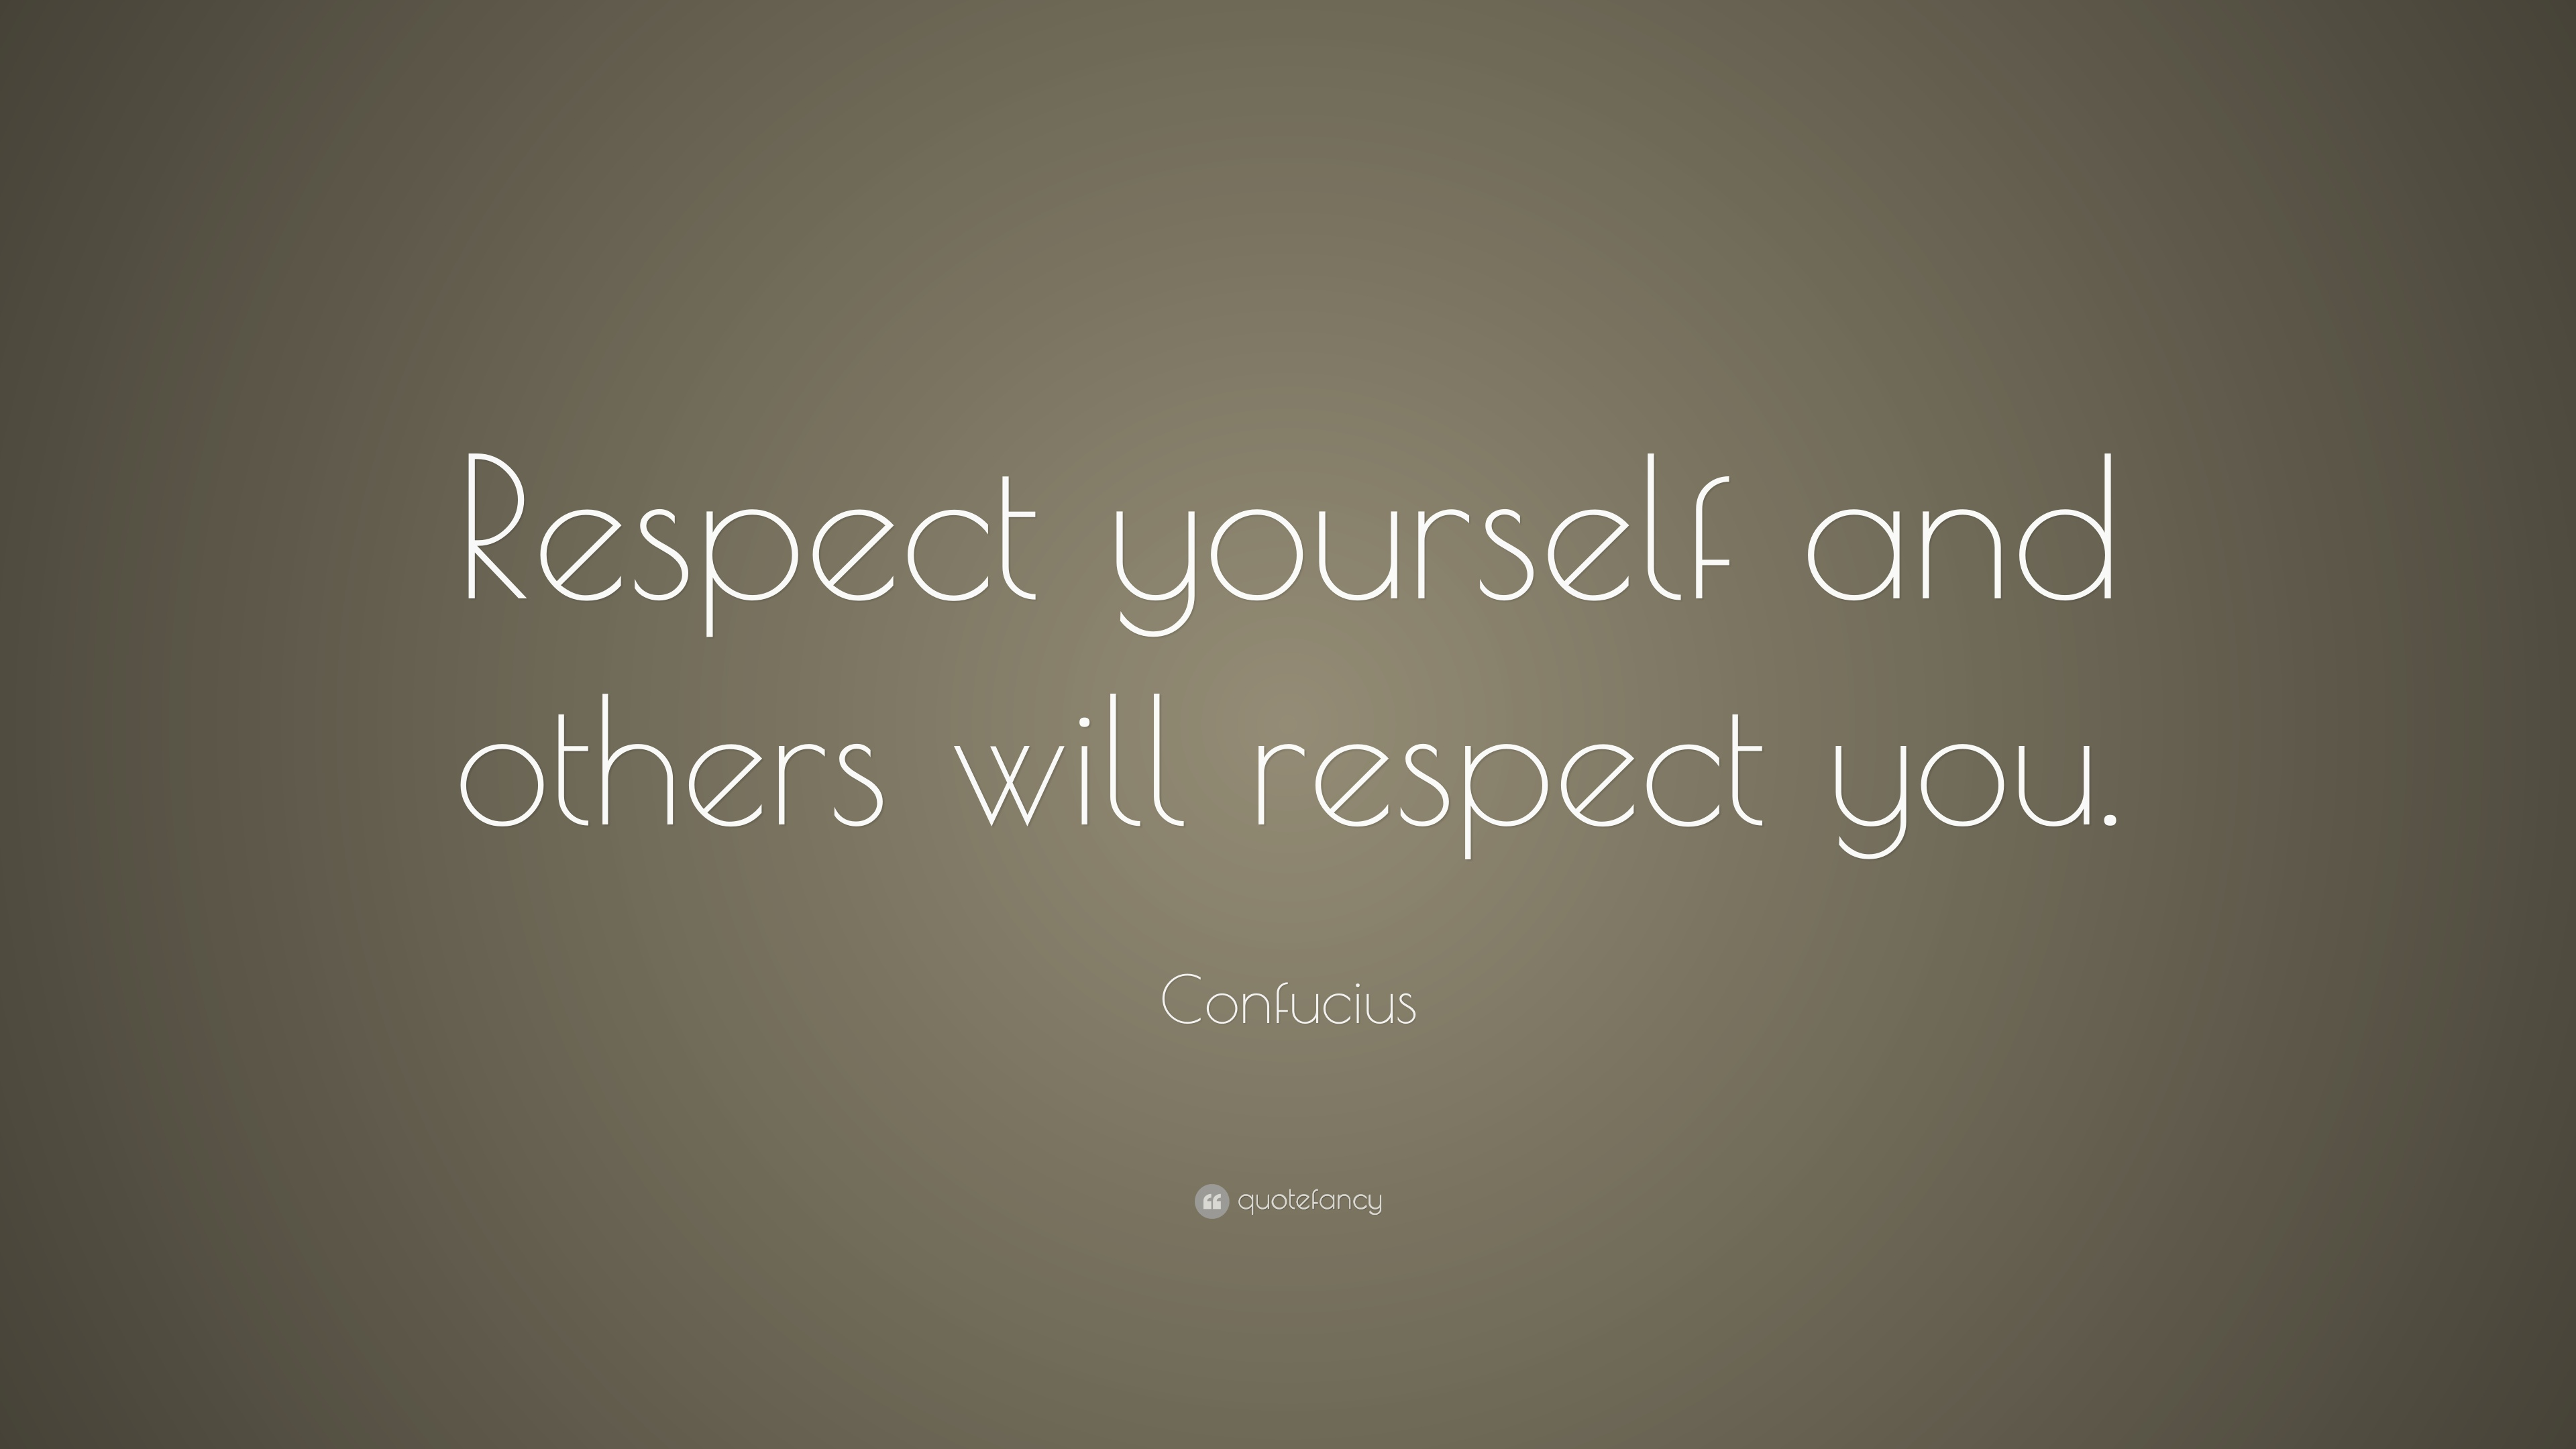 Delicieux Confucius Quote: U201cRespect Yourself And Others Will Respect You.u201d